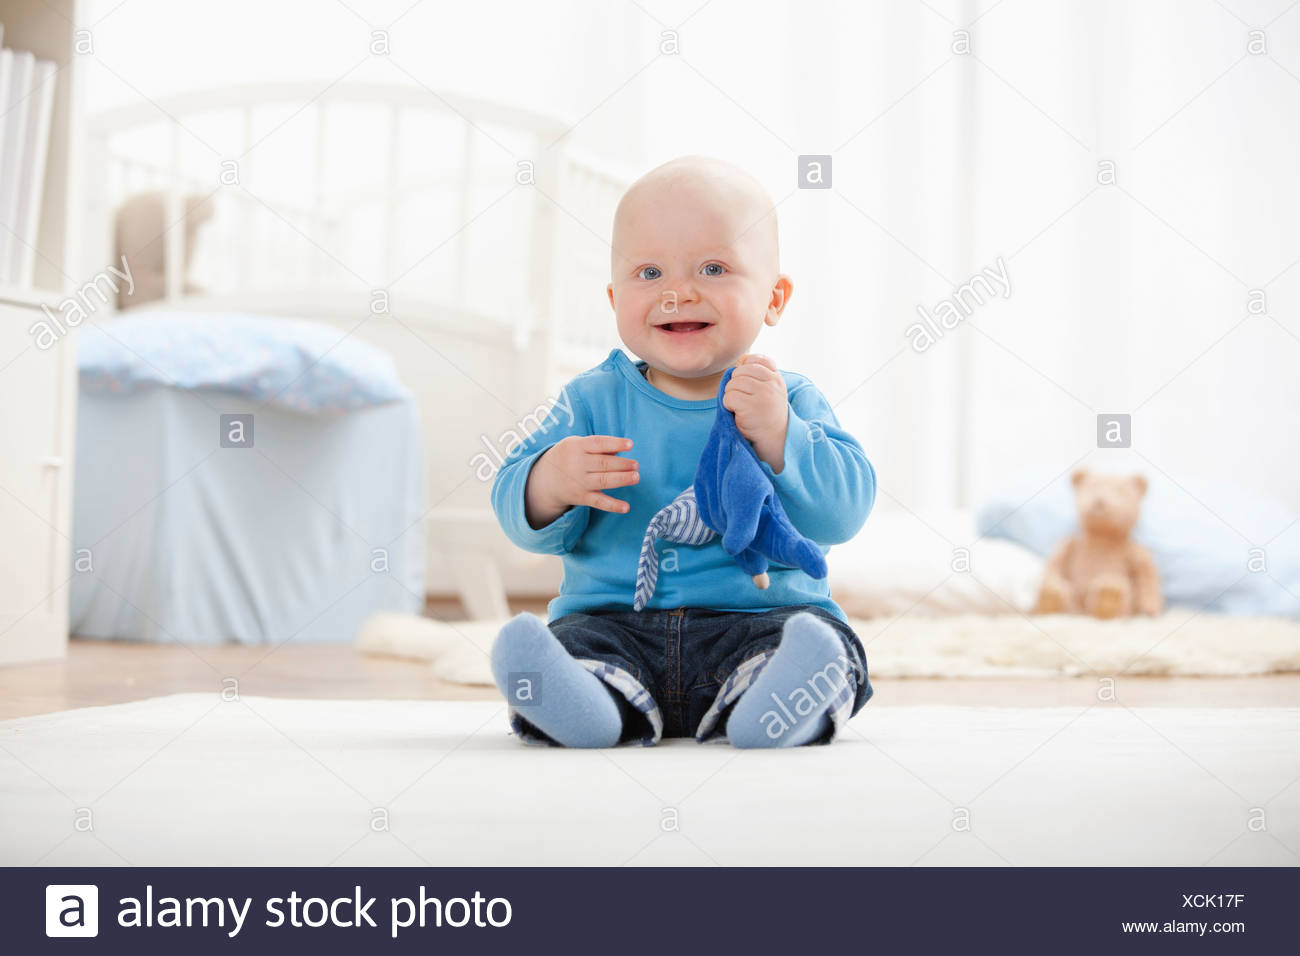 Baby boy playing with soft toy - Stock Image